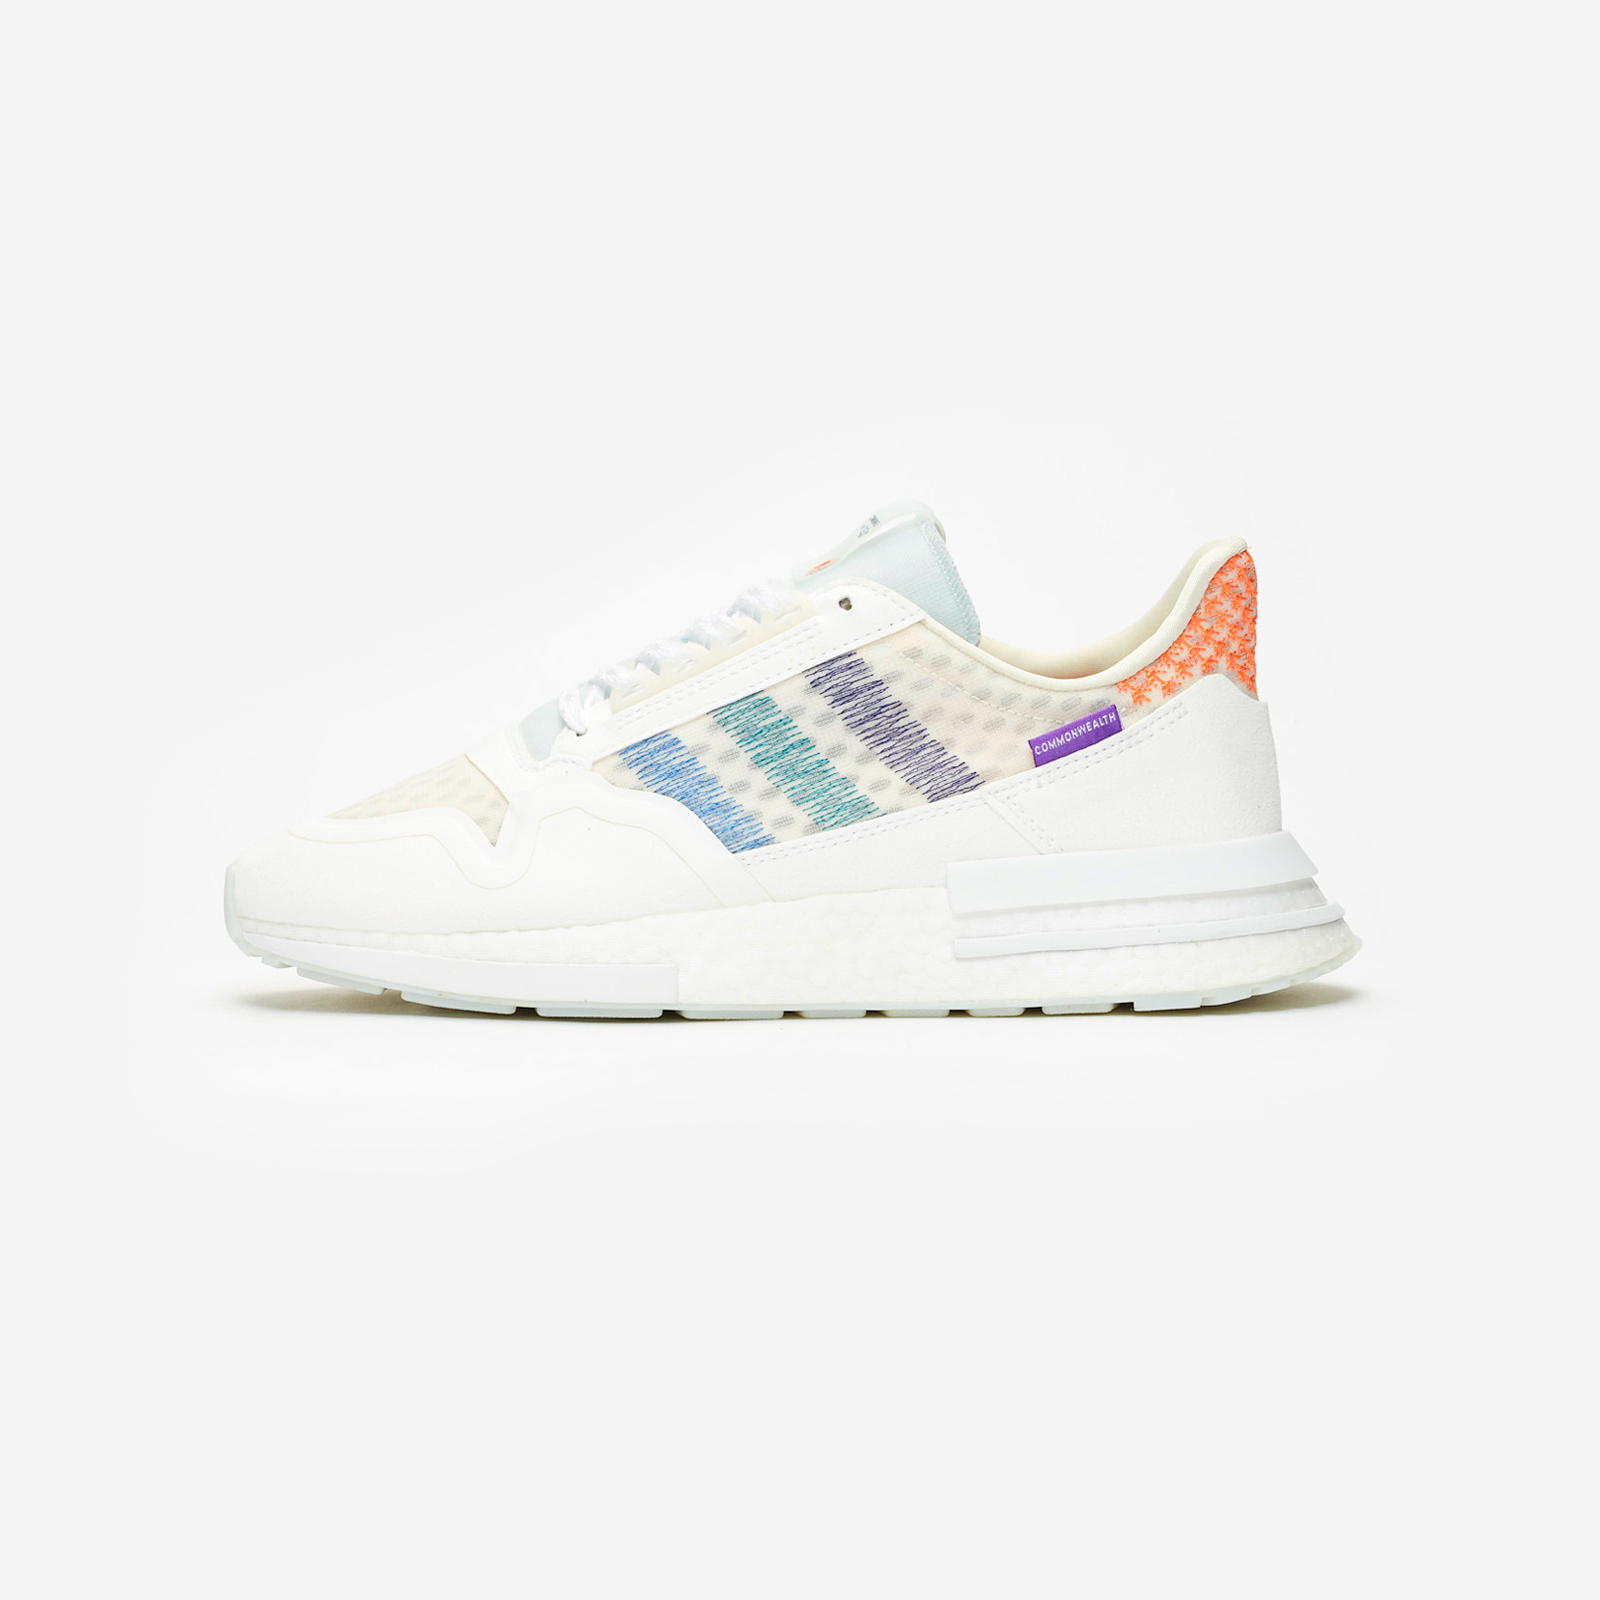 ace4645f7 adidas ZX 500 x Commonwealth - Db3510 - Sneakersnstuff